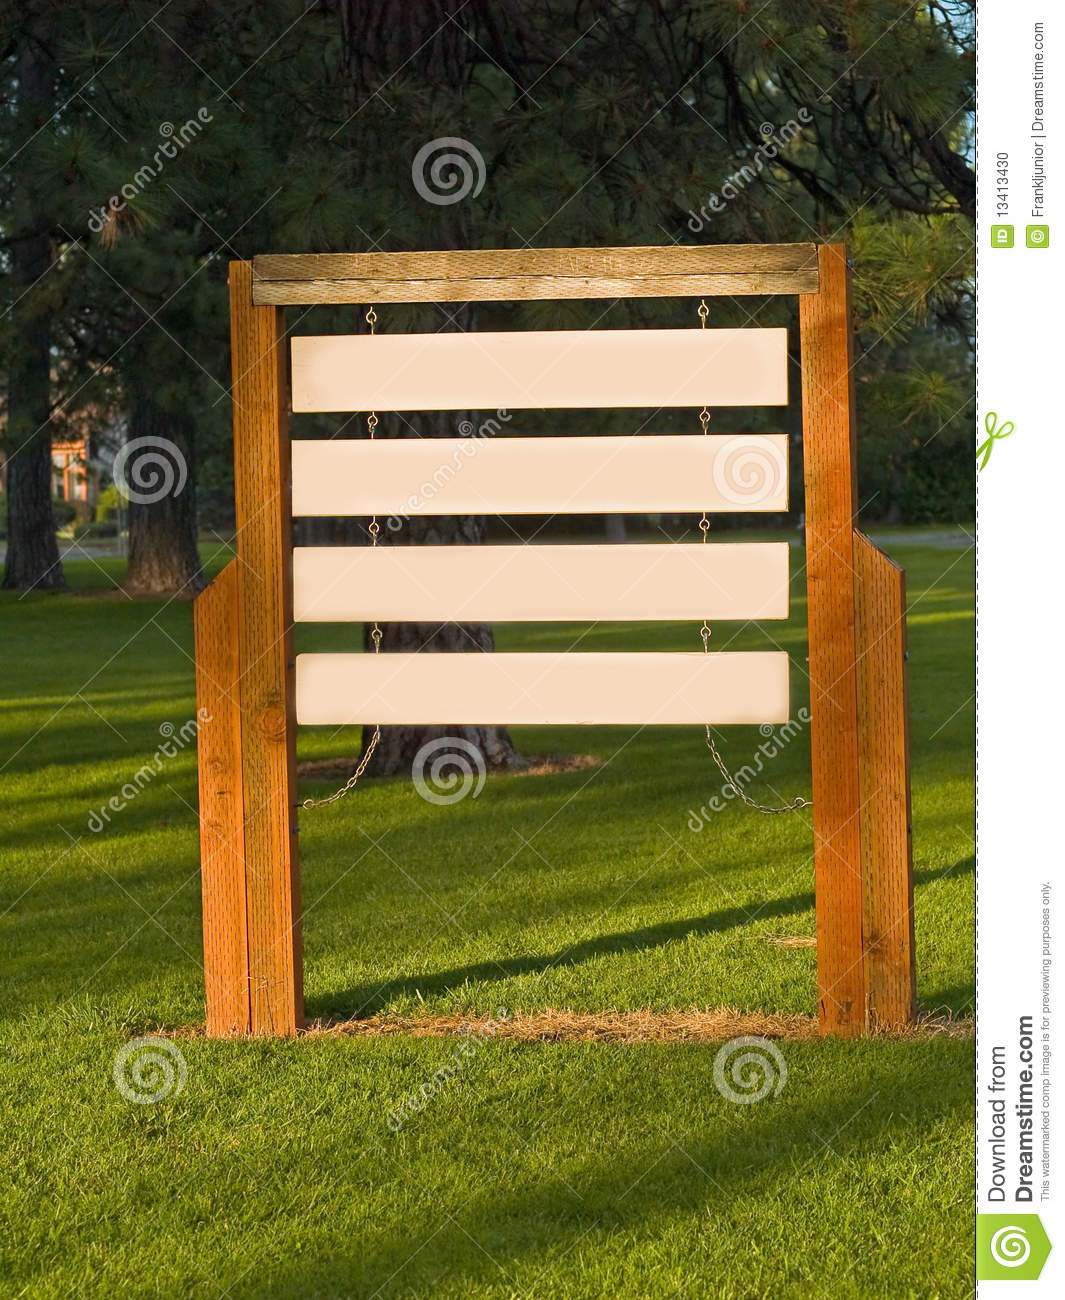 Blank Wooden Signs Stock Photo Image 13413430